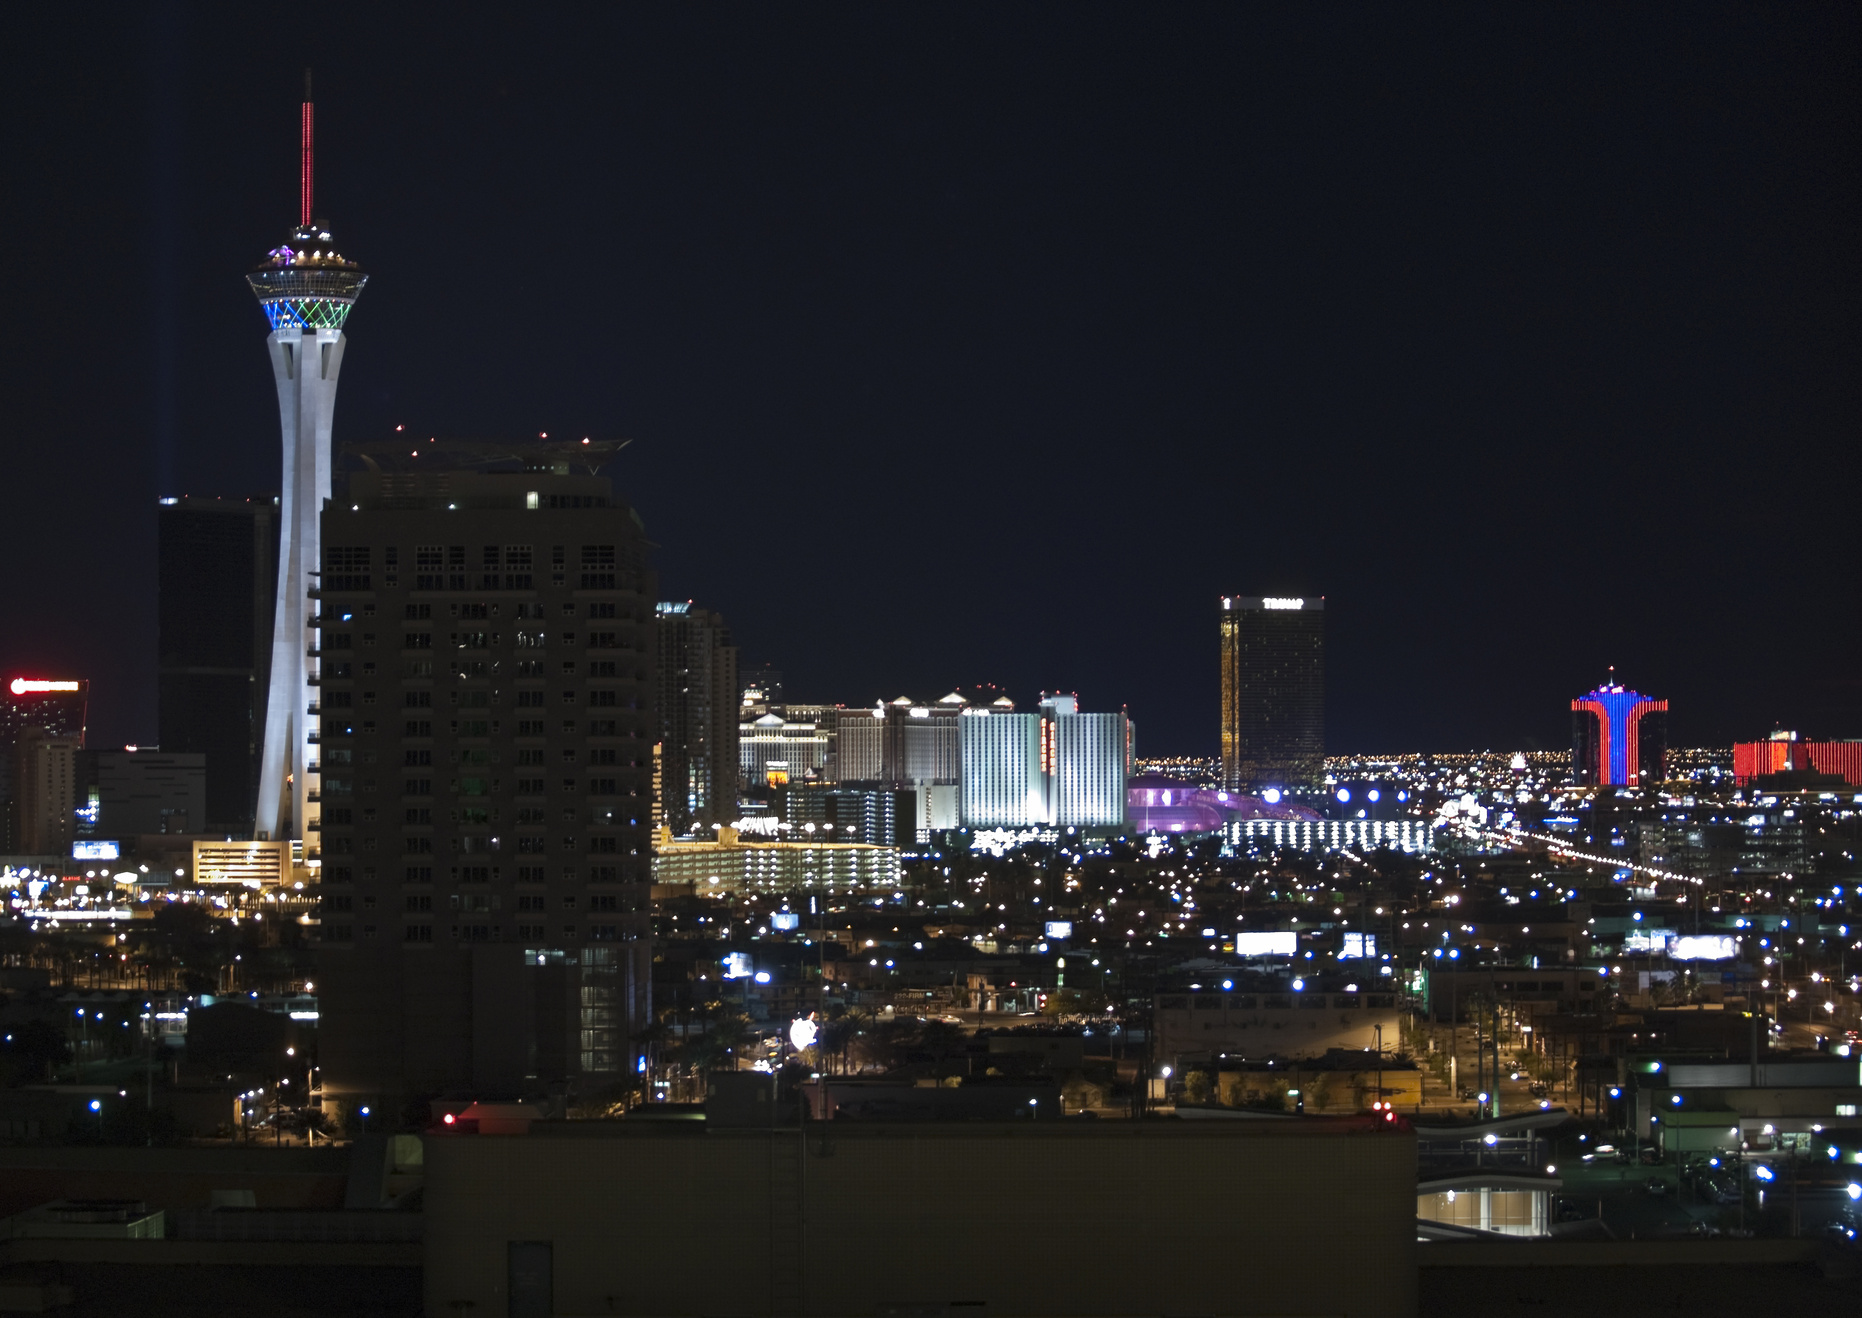 Stratosphere, Circus Circus and other Vegas resorts at night.